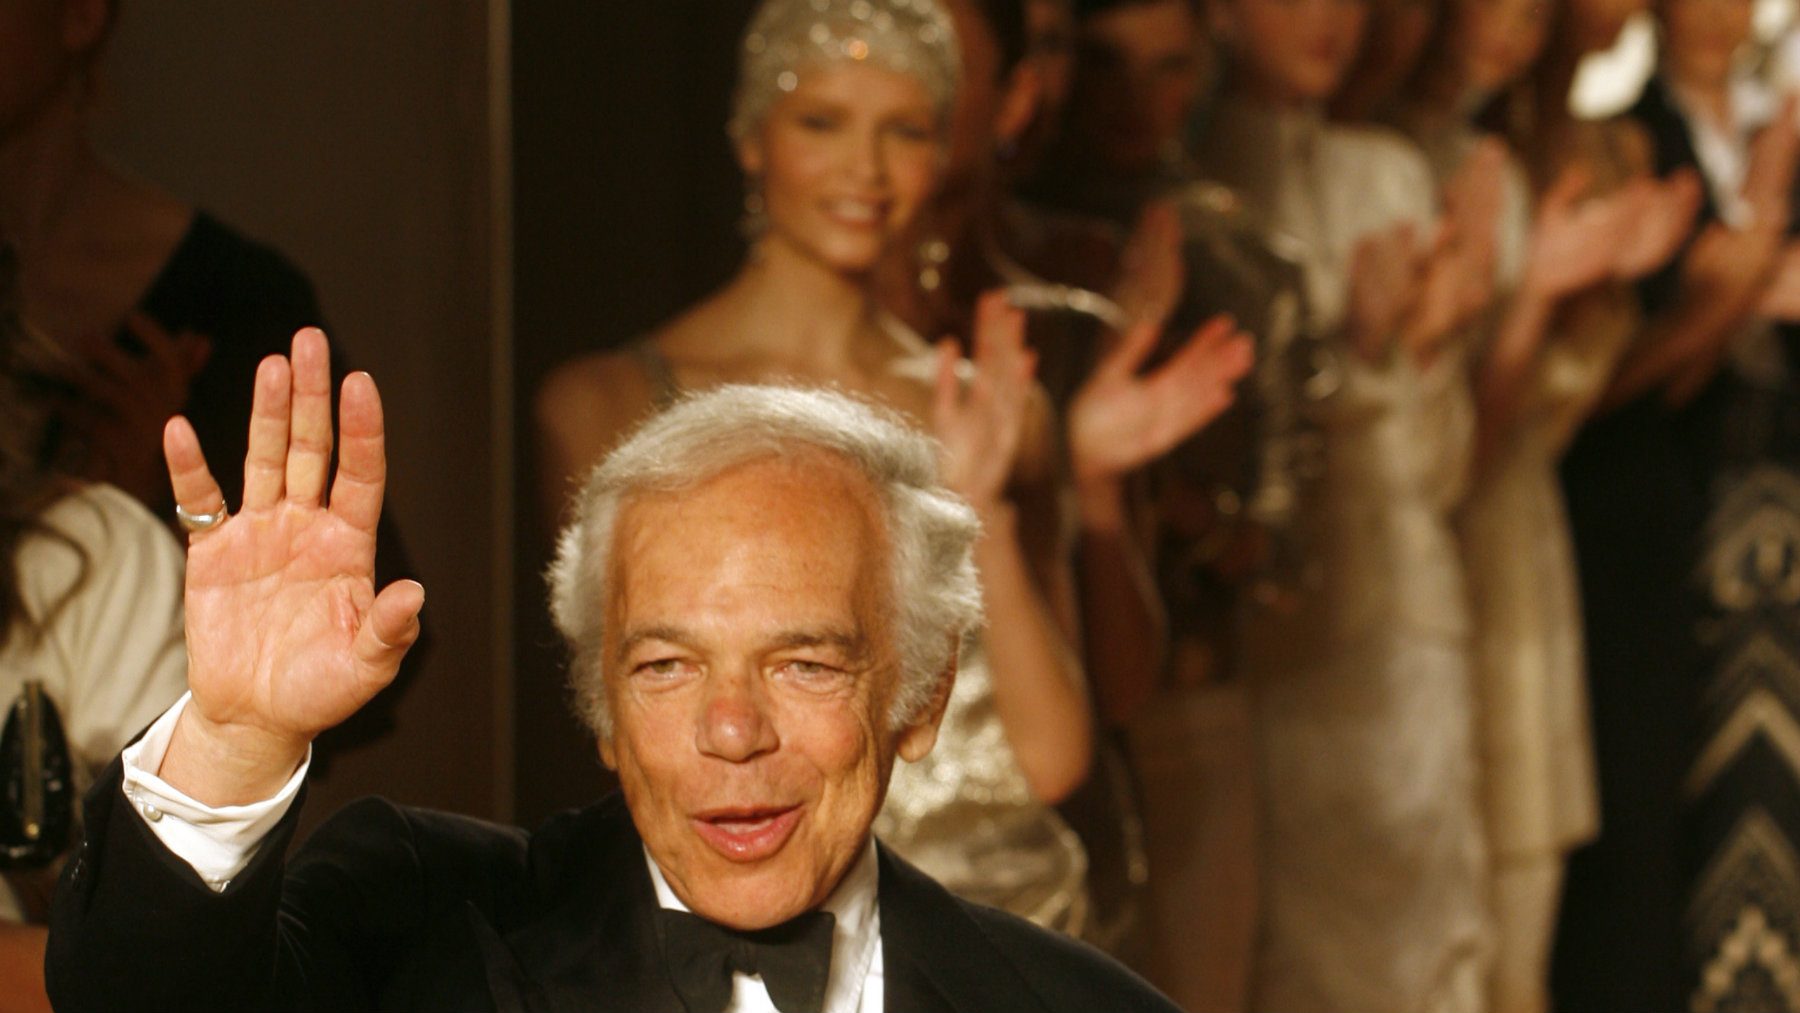 American designer Ralph Lauren acknowledges greetings after his fashion show in the Spaso House, U.S. Ambassador's residence in Moscow, Tuesday, May 15, 2007. (AP Photo/Mikhail Metzel)